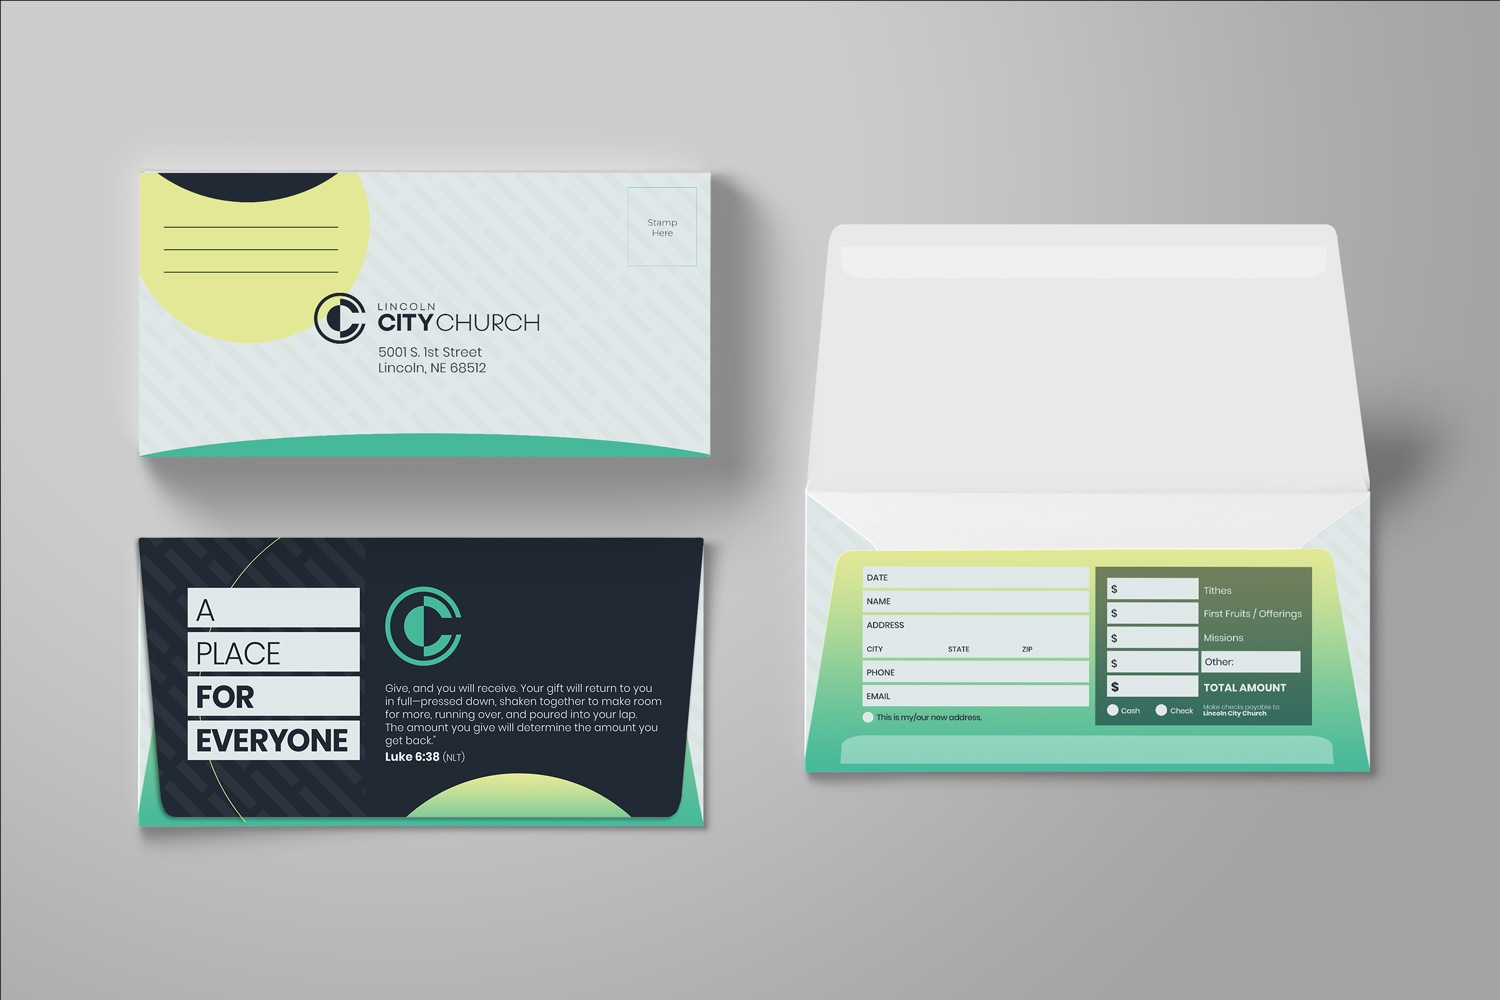 Custom church offering envelopes design for church branding, marketing, & outreach ideas